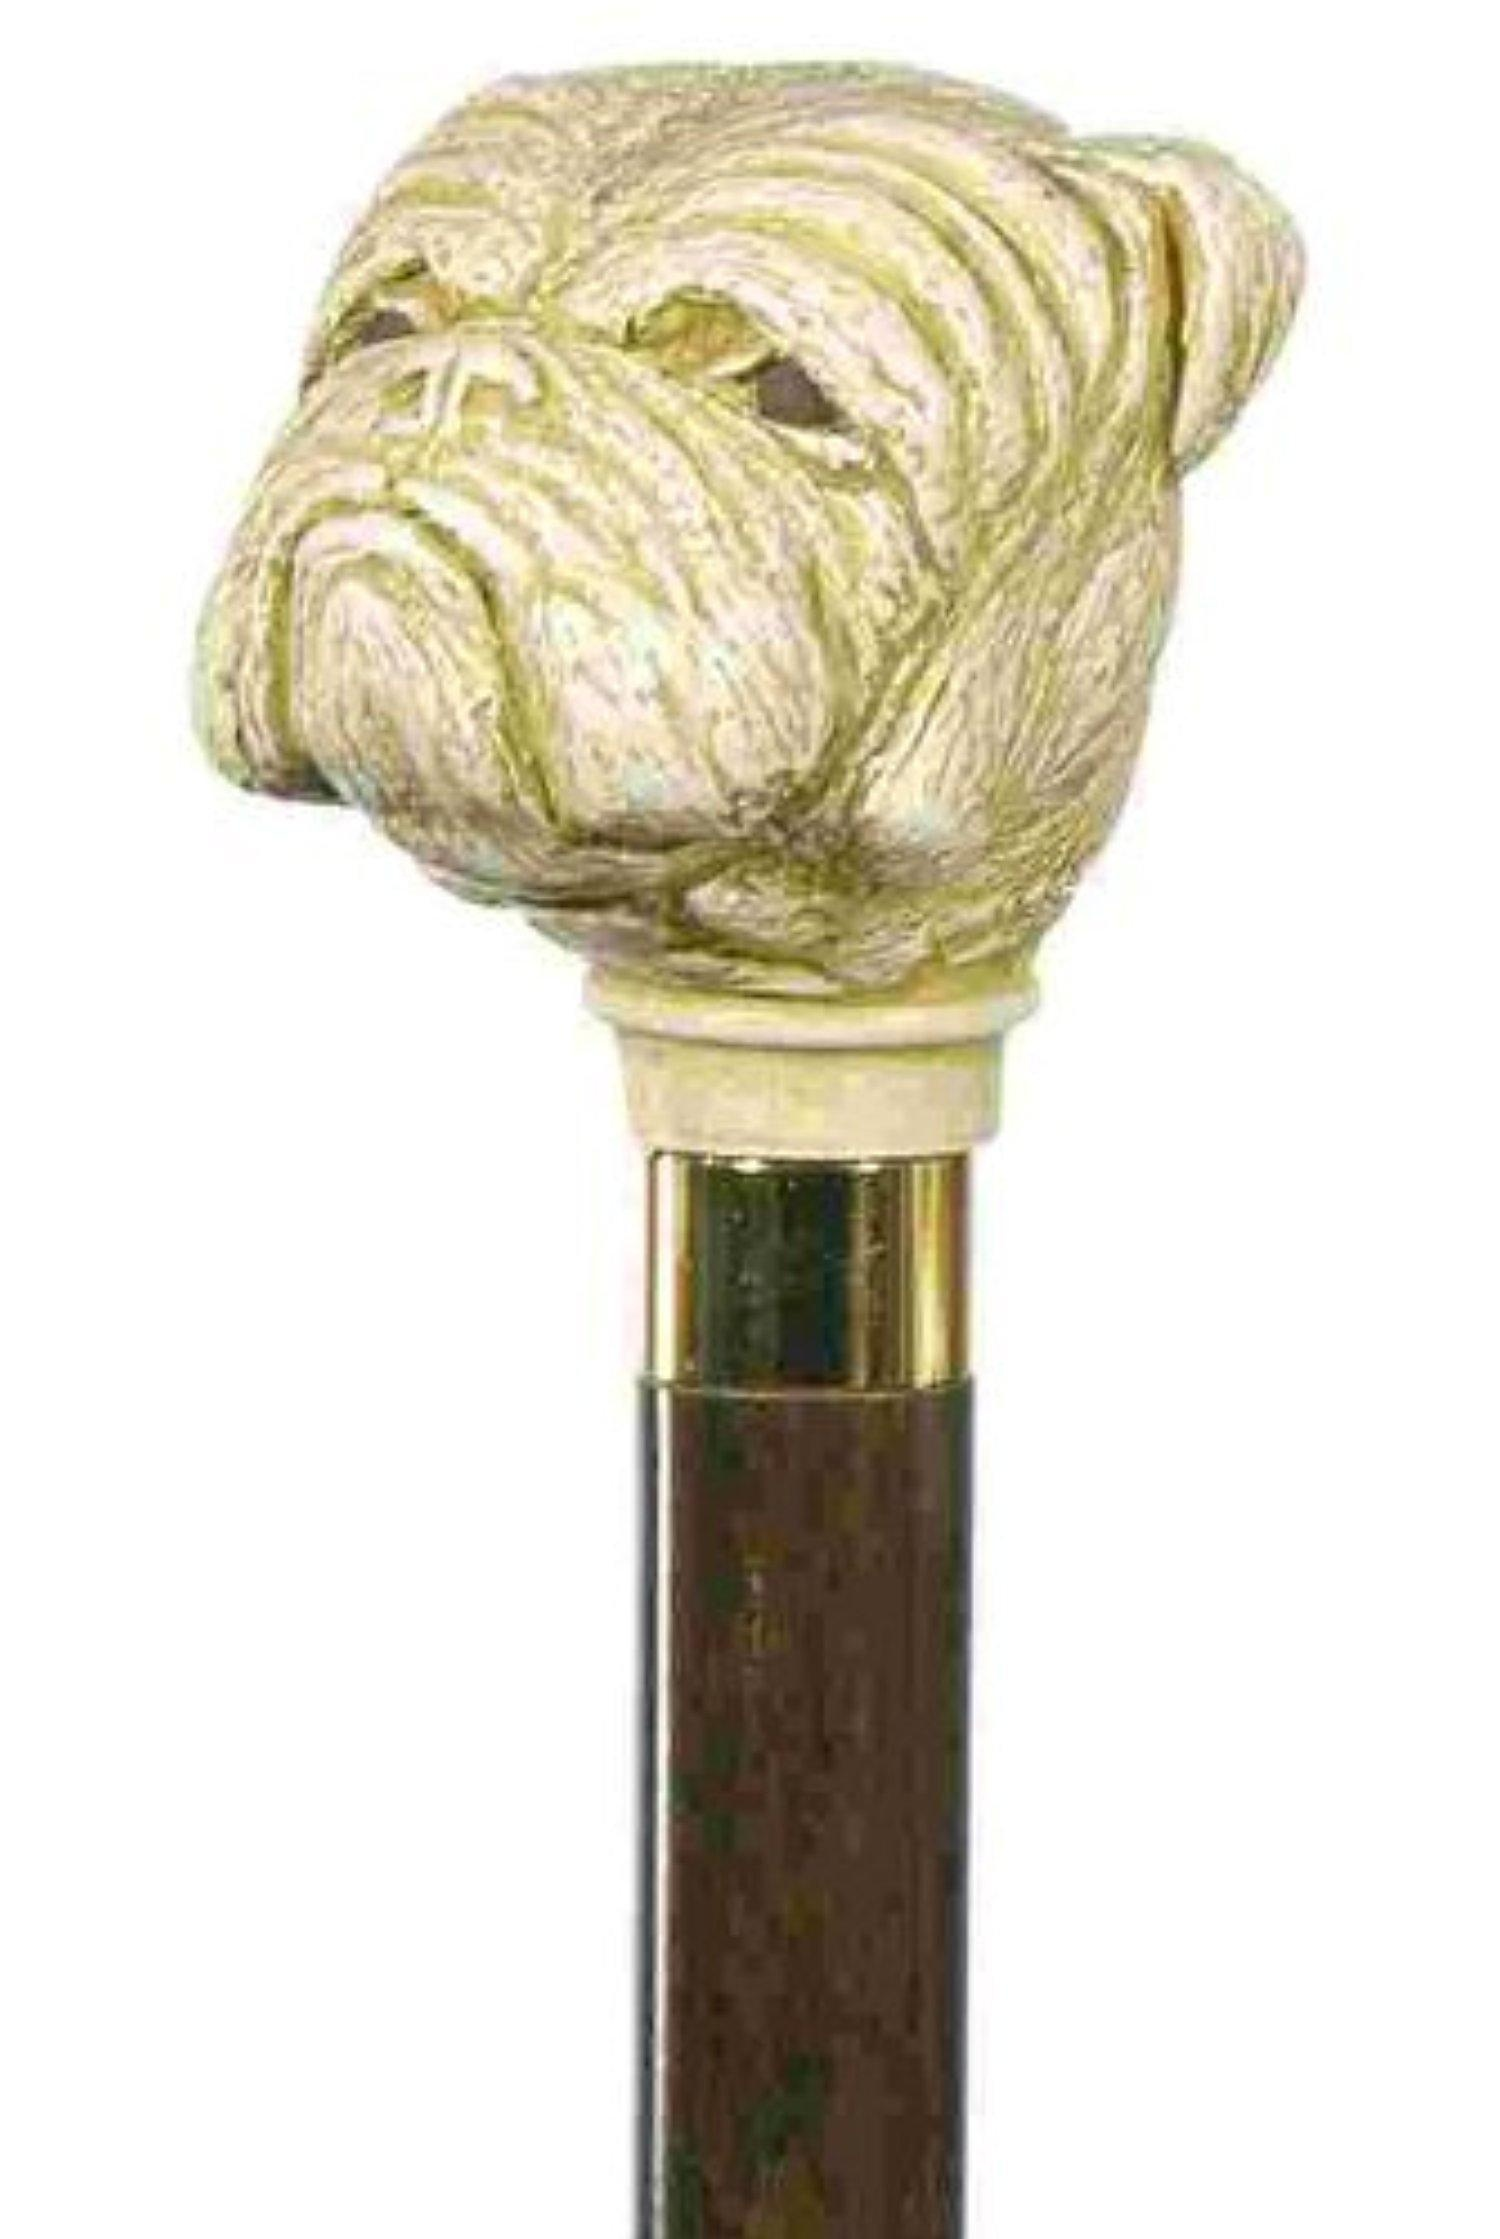 Bulldog Headed Walking Stick Cane by Classic Canes